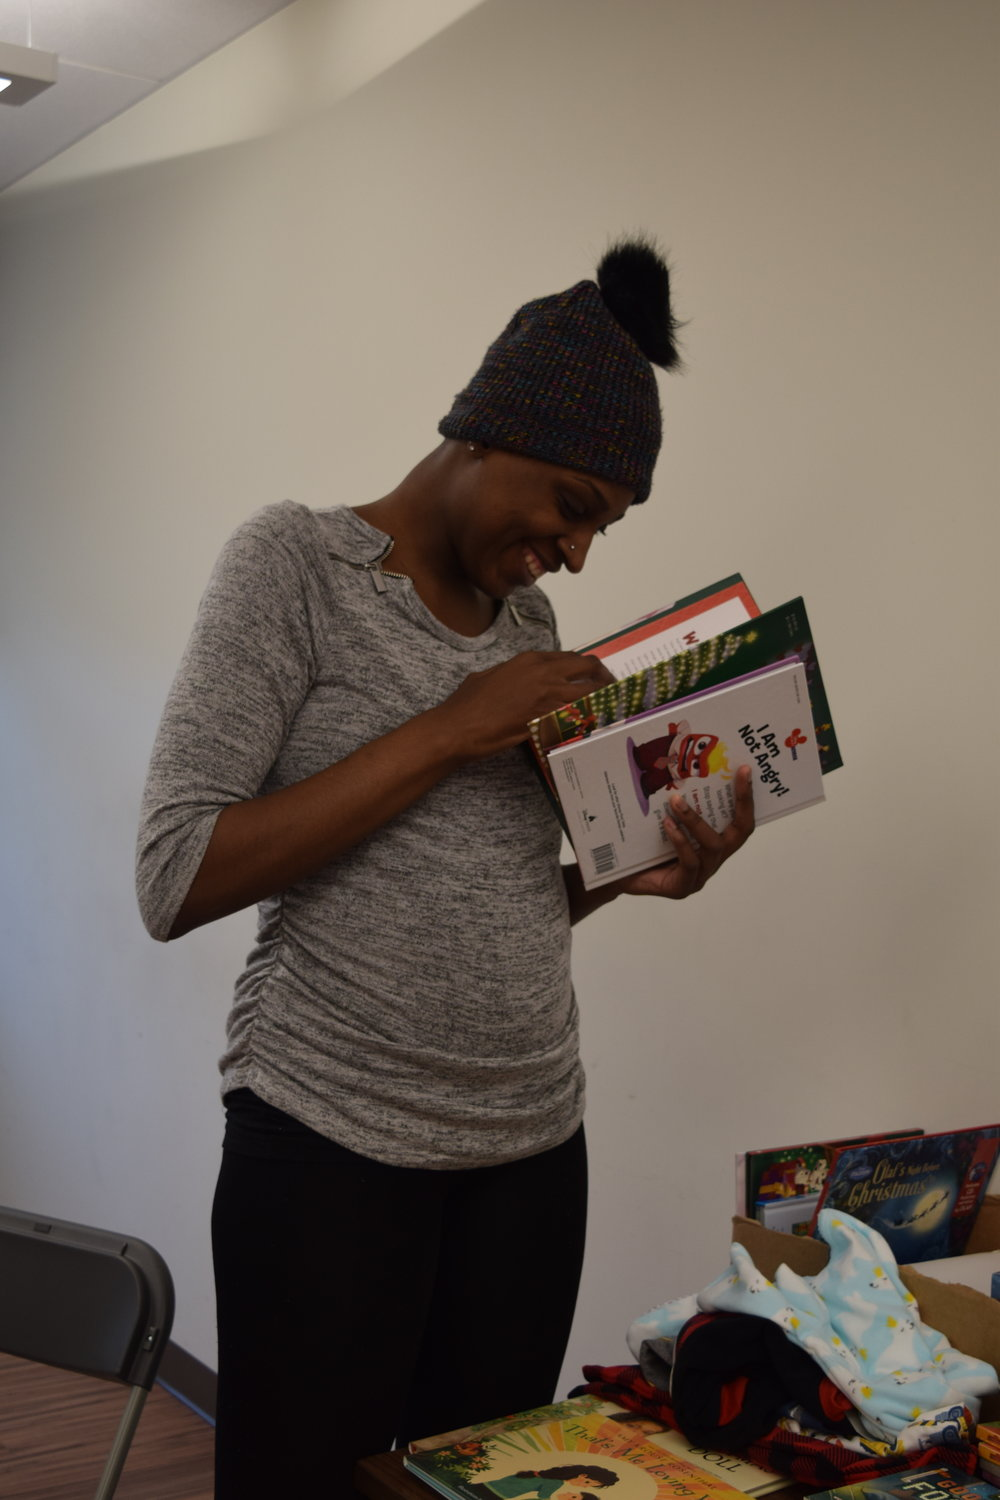 Jasmine leafing through the books for her kids